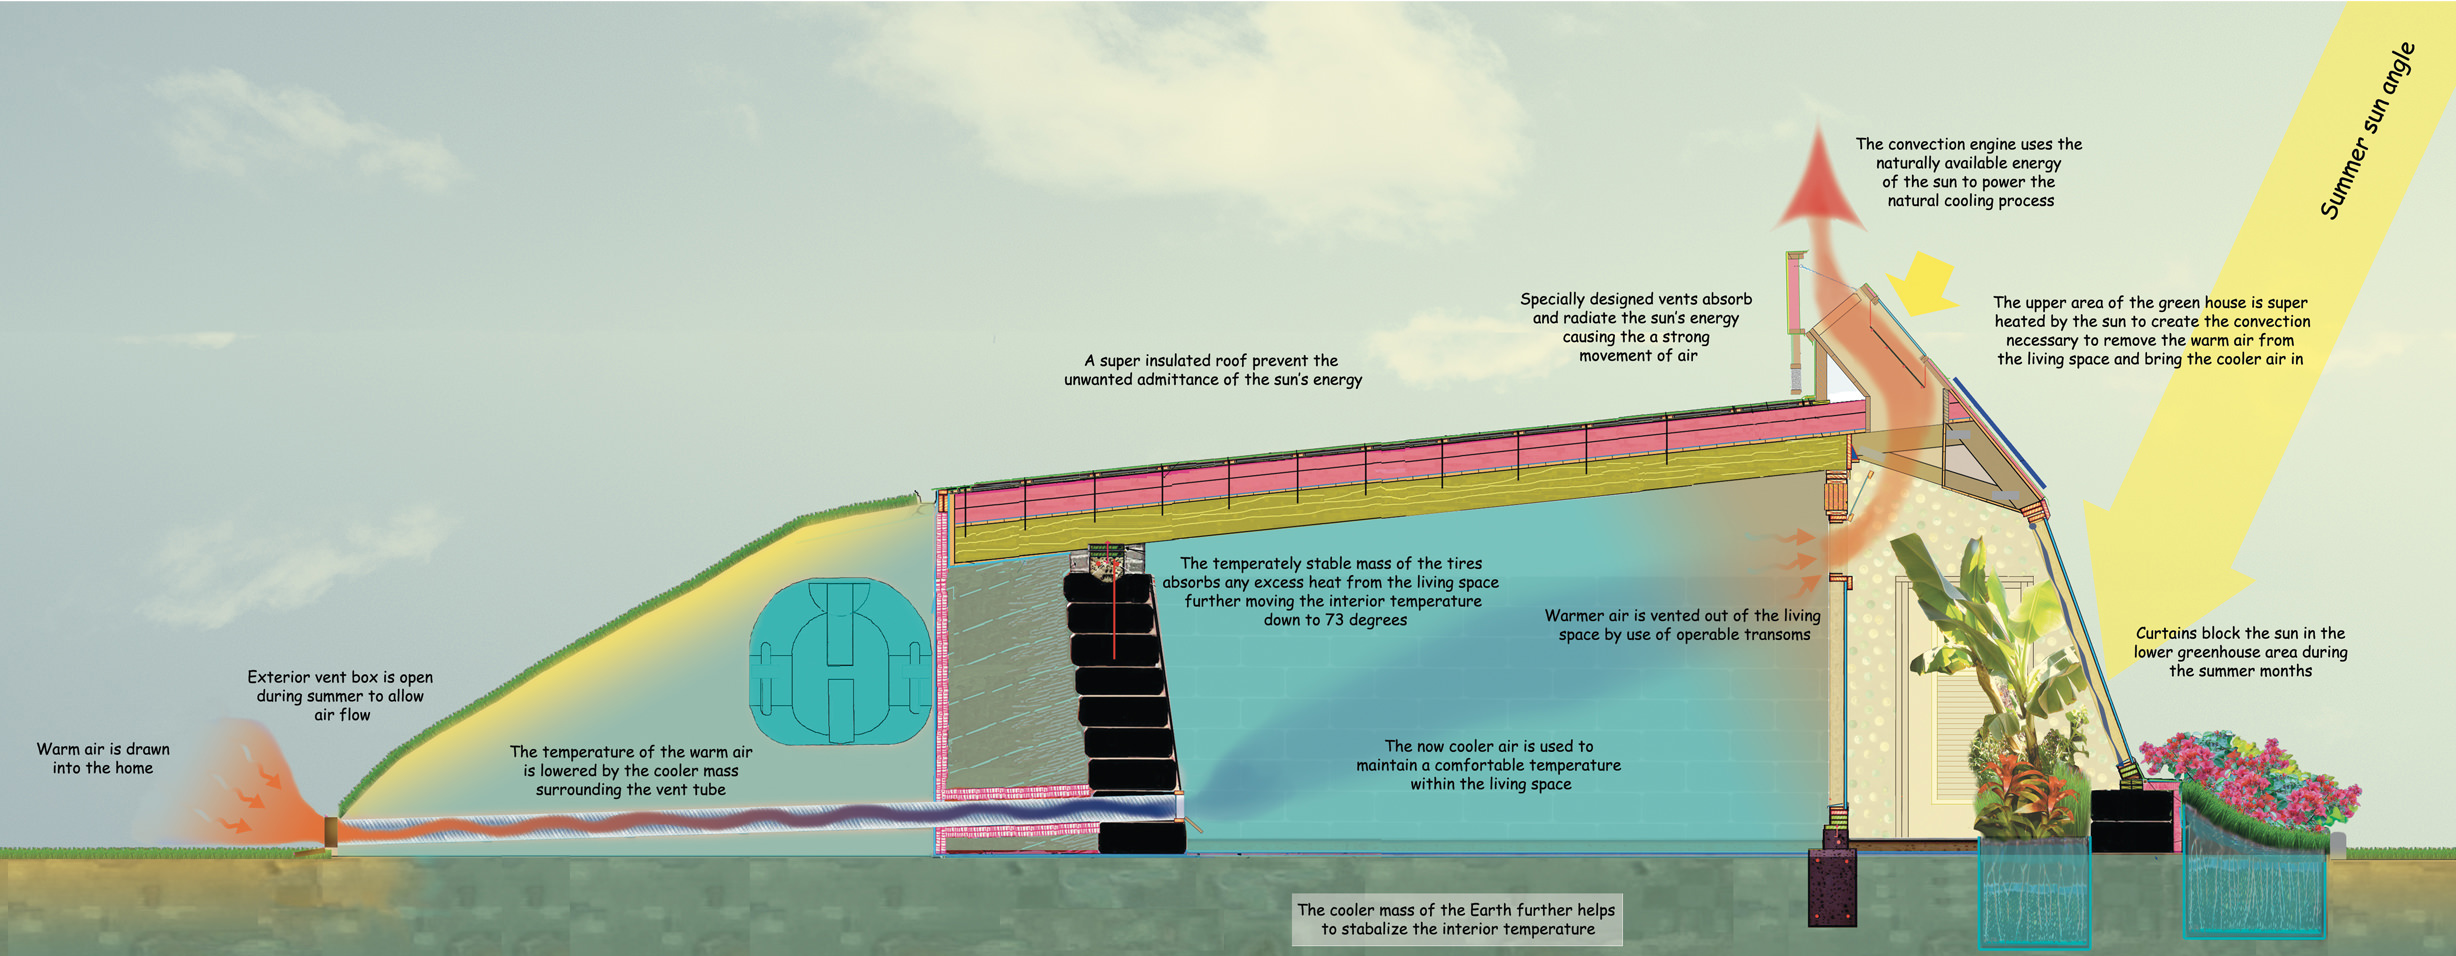 Natural convection cooling an Earthship